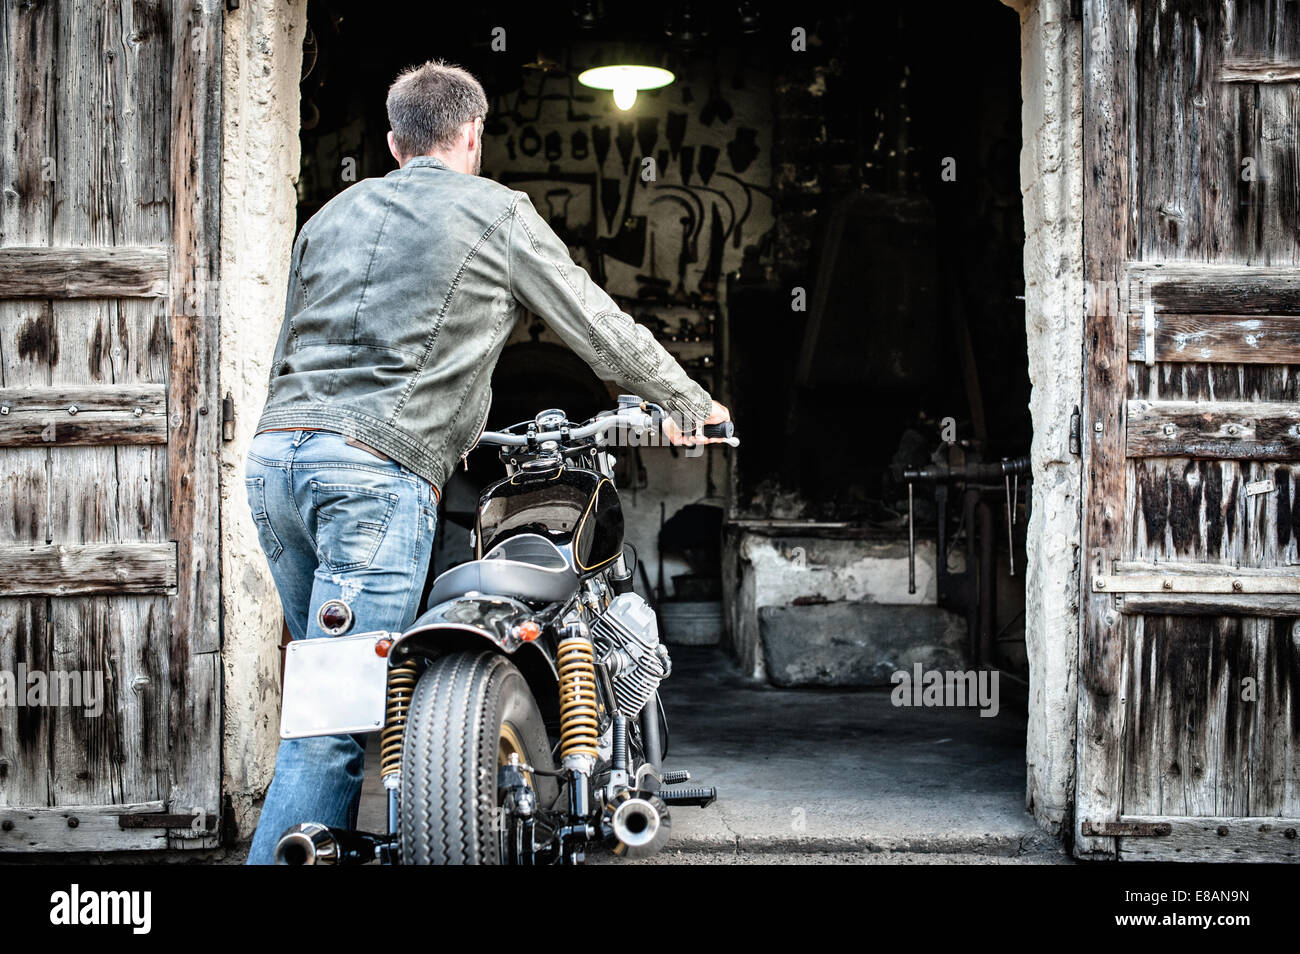 Mid adult man pushing motorcycle into barn - Stock Image